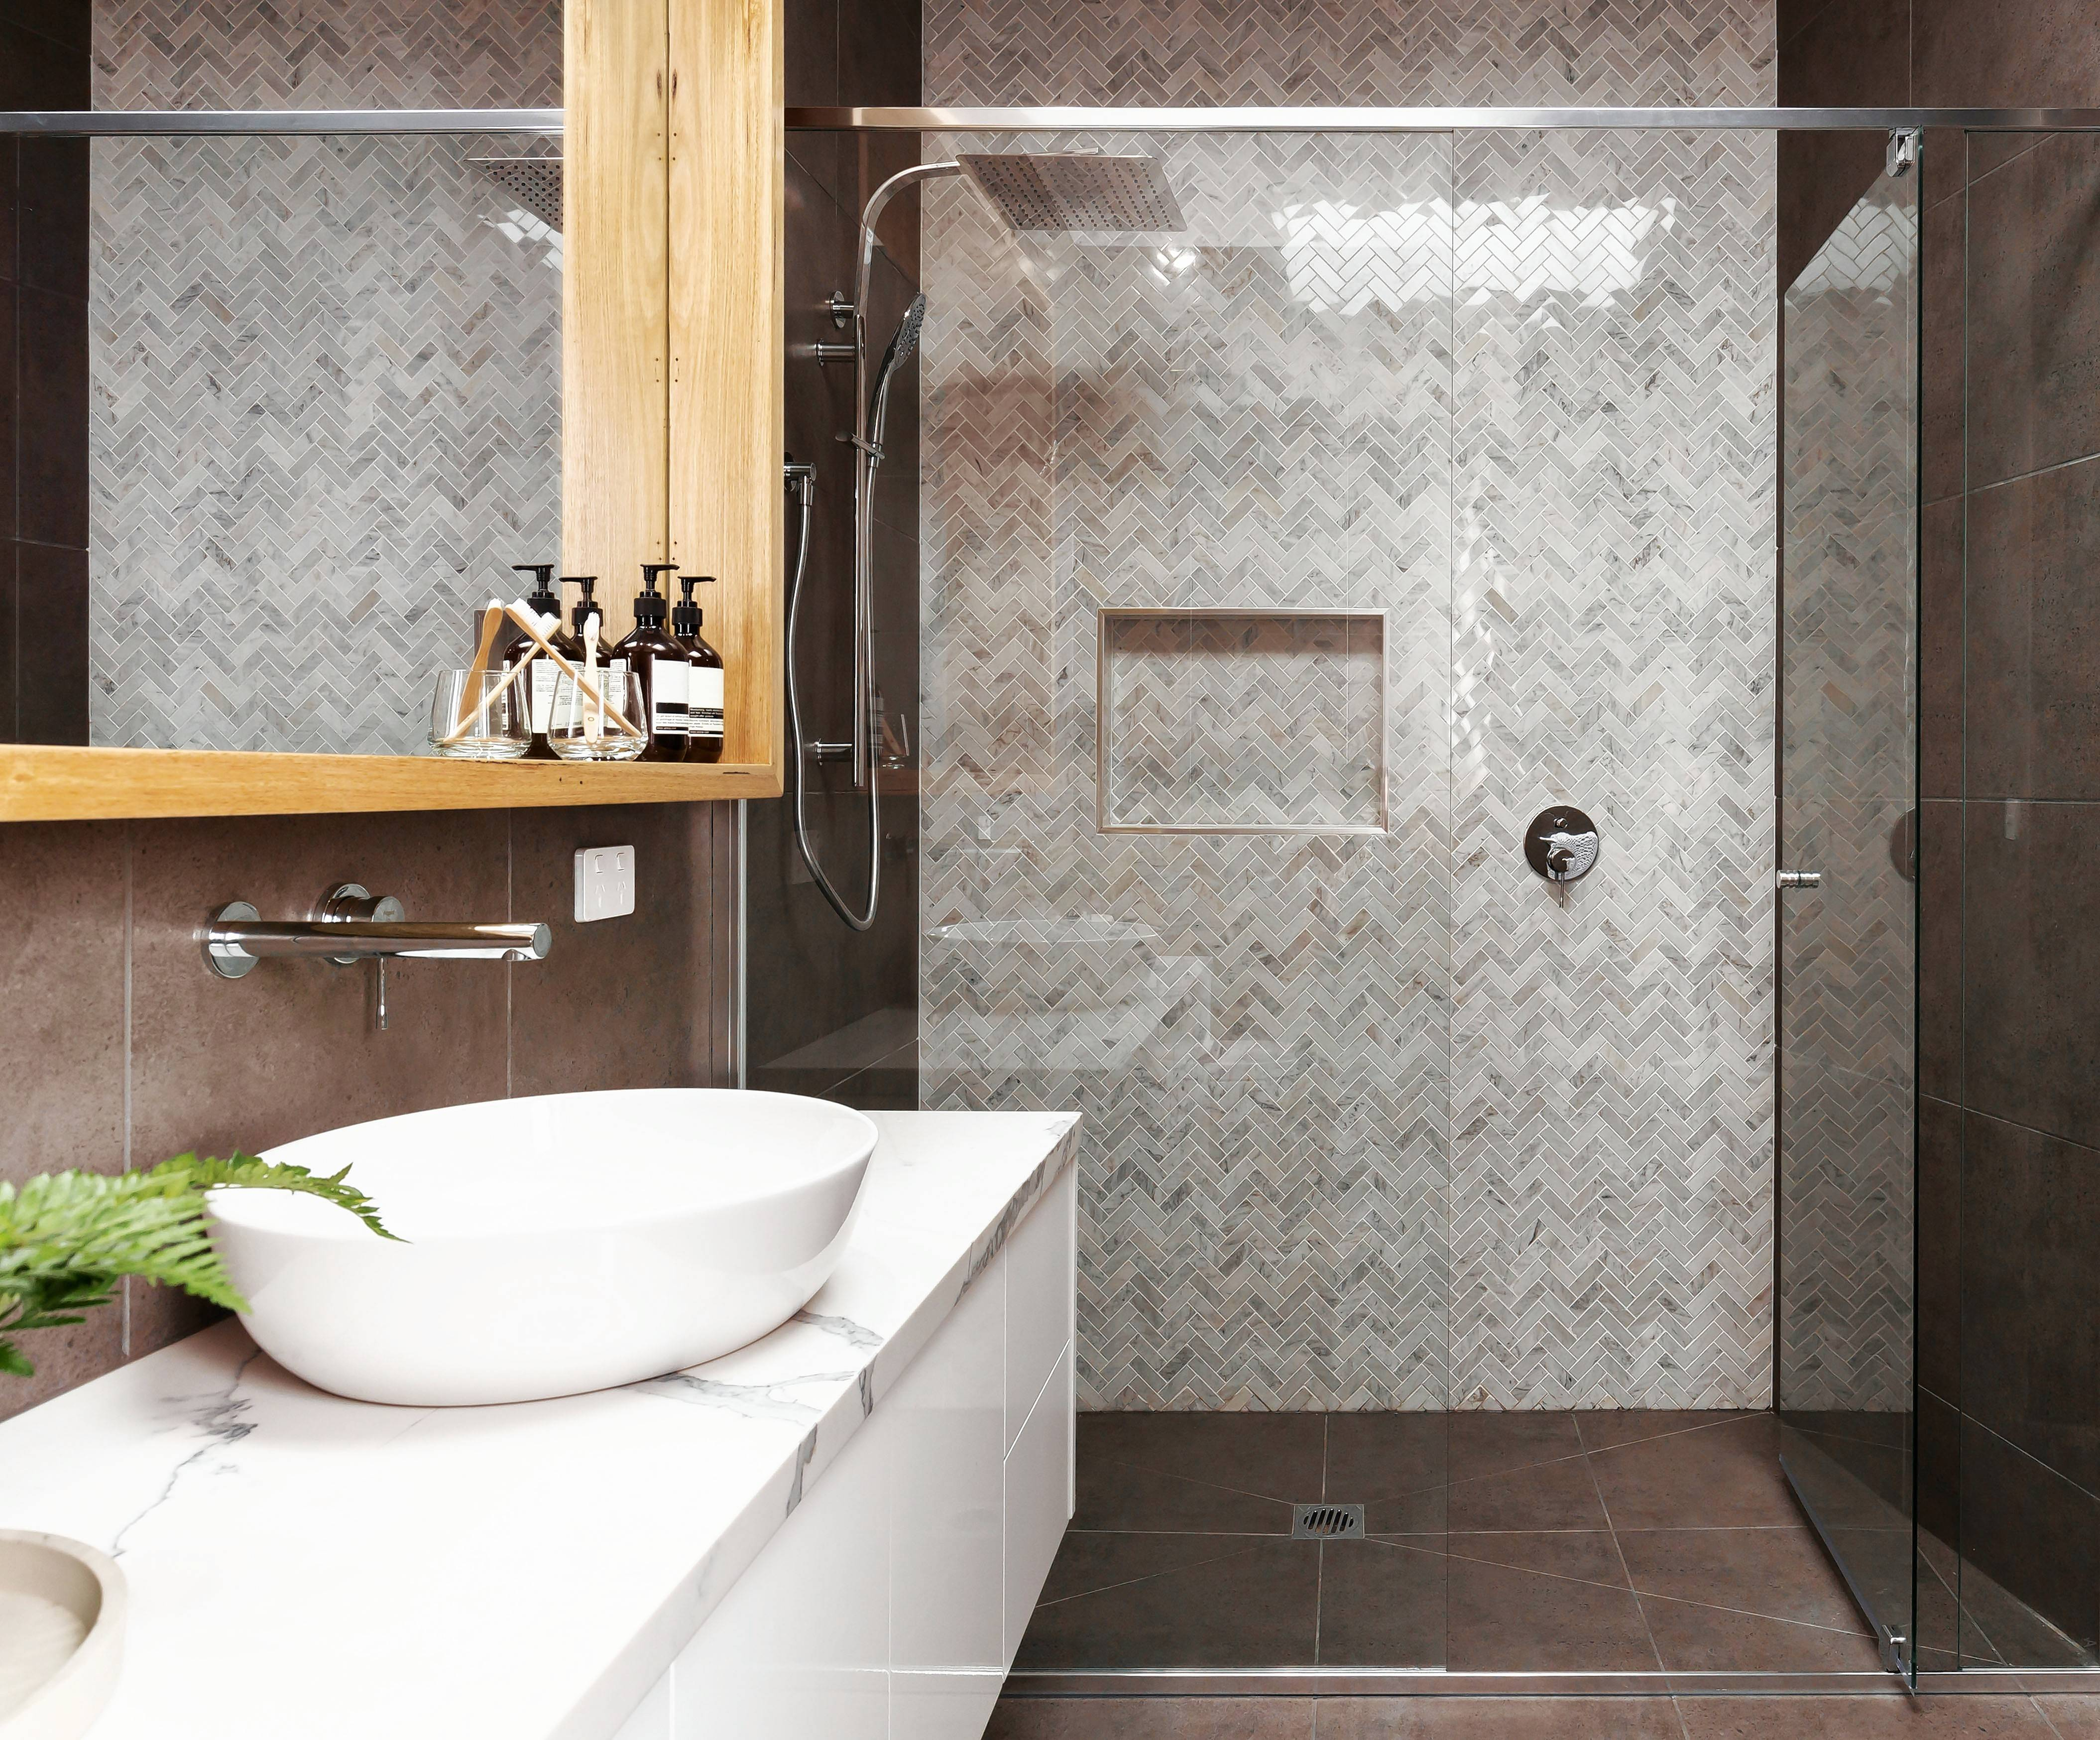 This Shower, Using Marble Tile In A Mosaic Herringbone Pattern, Makes For A  Contemporary